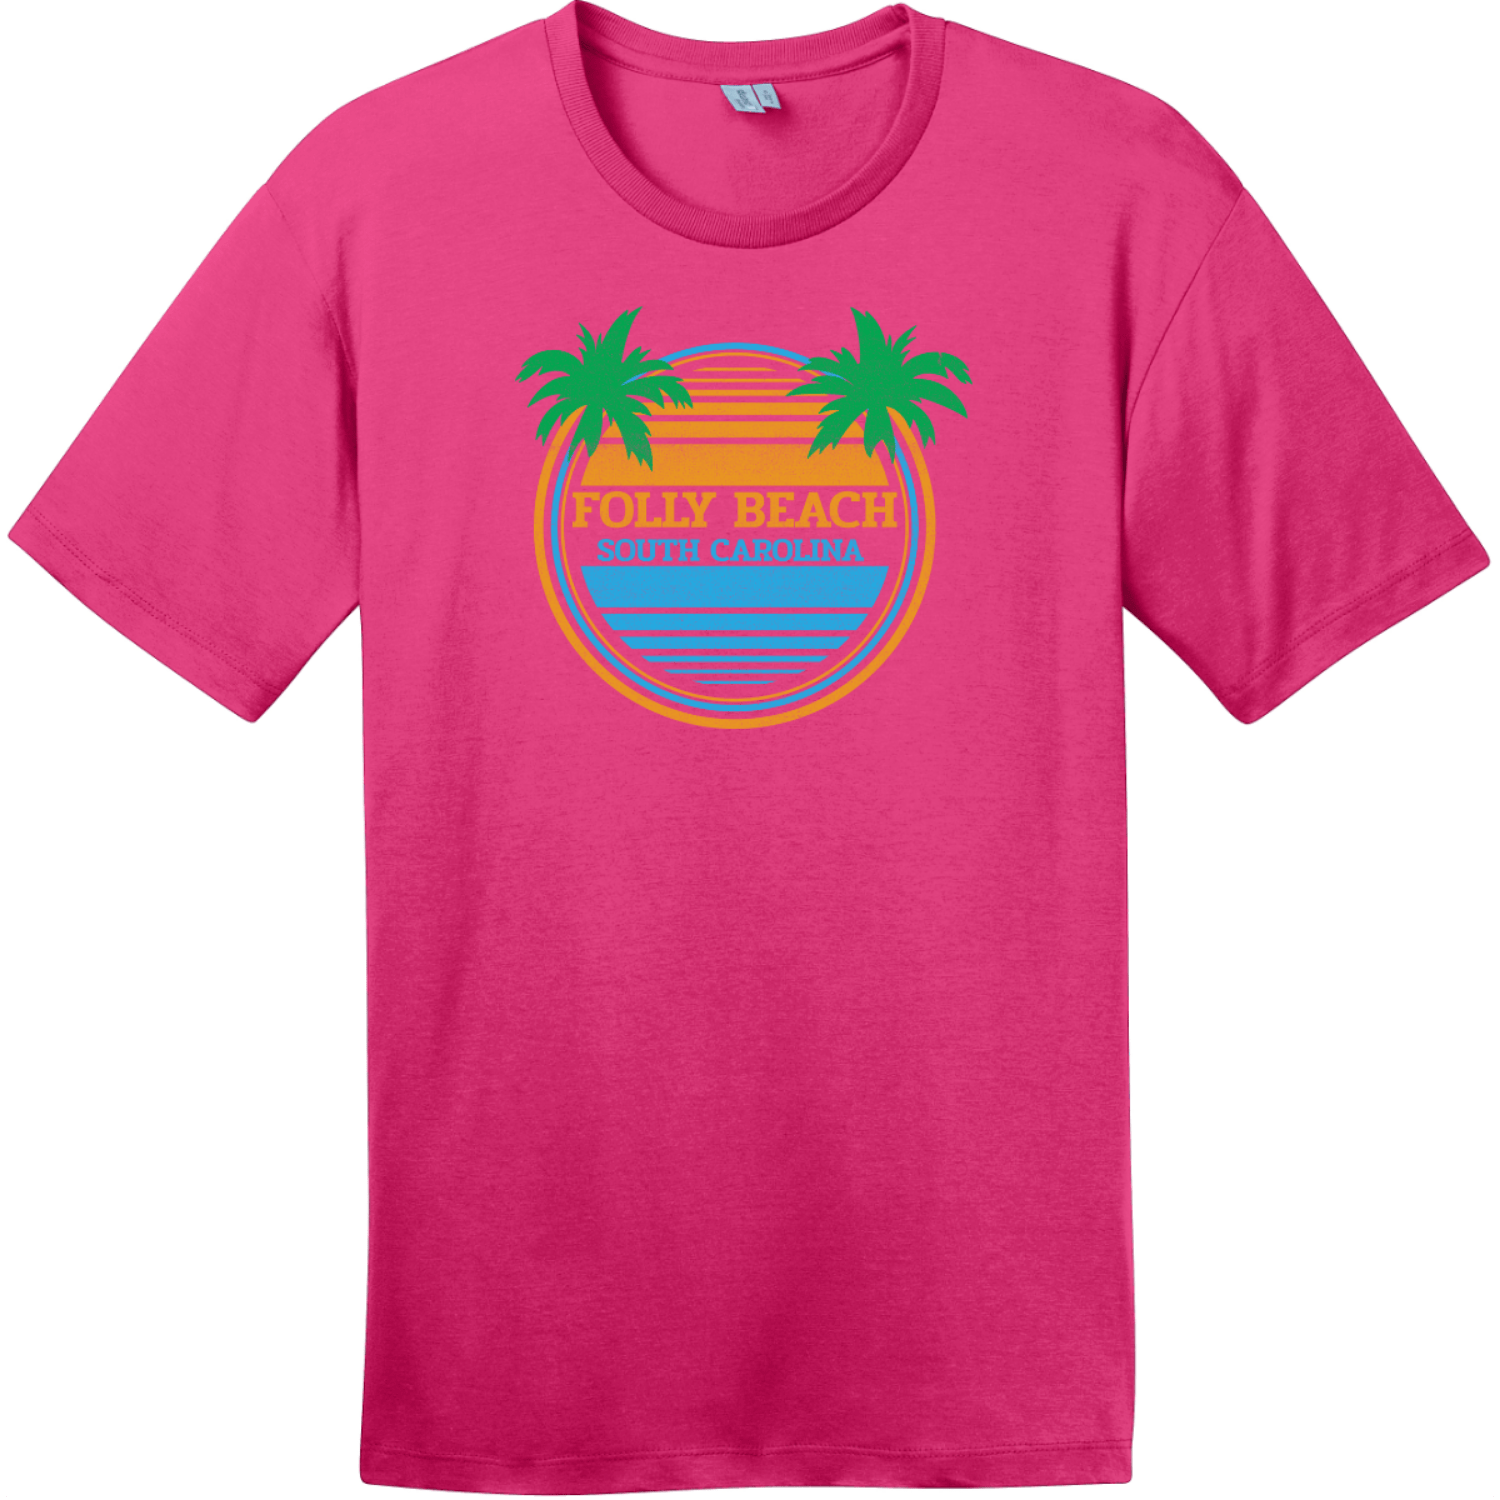 Folly Beach South Carolina Palm Trees T-Shirt Dark Fuchsia District Perfect Weight Tee DT104